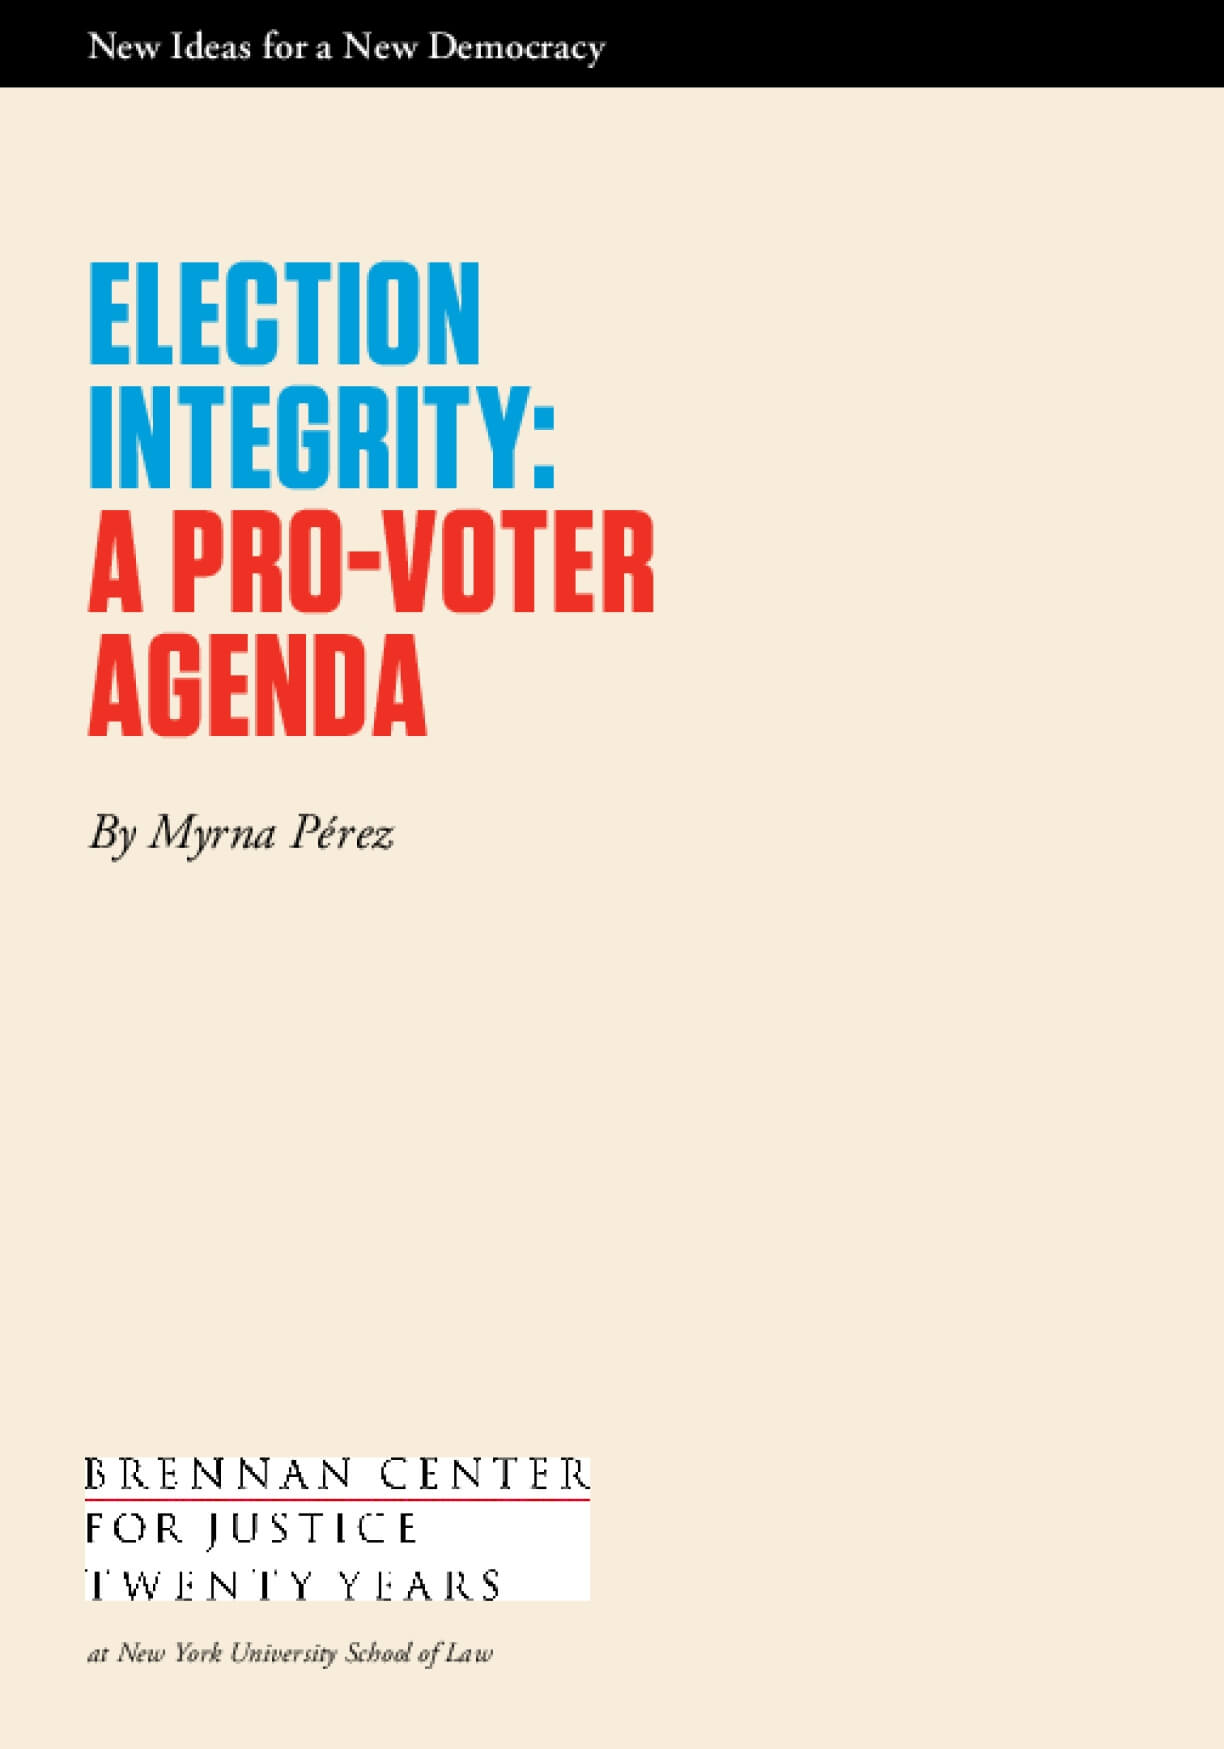 Election Integrity: A Pro-Voter Agenda